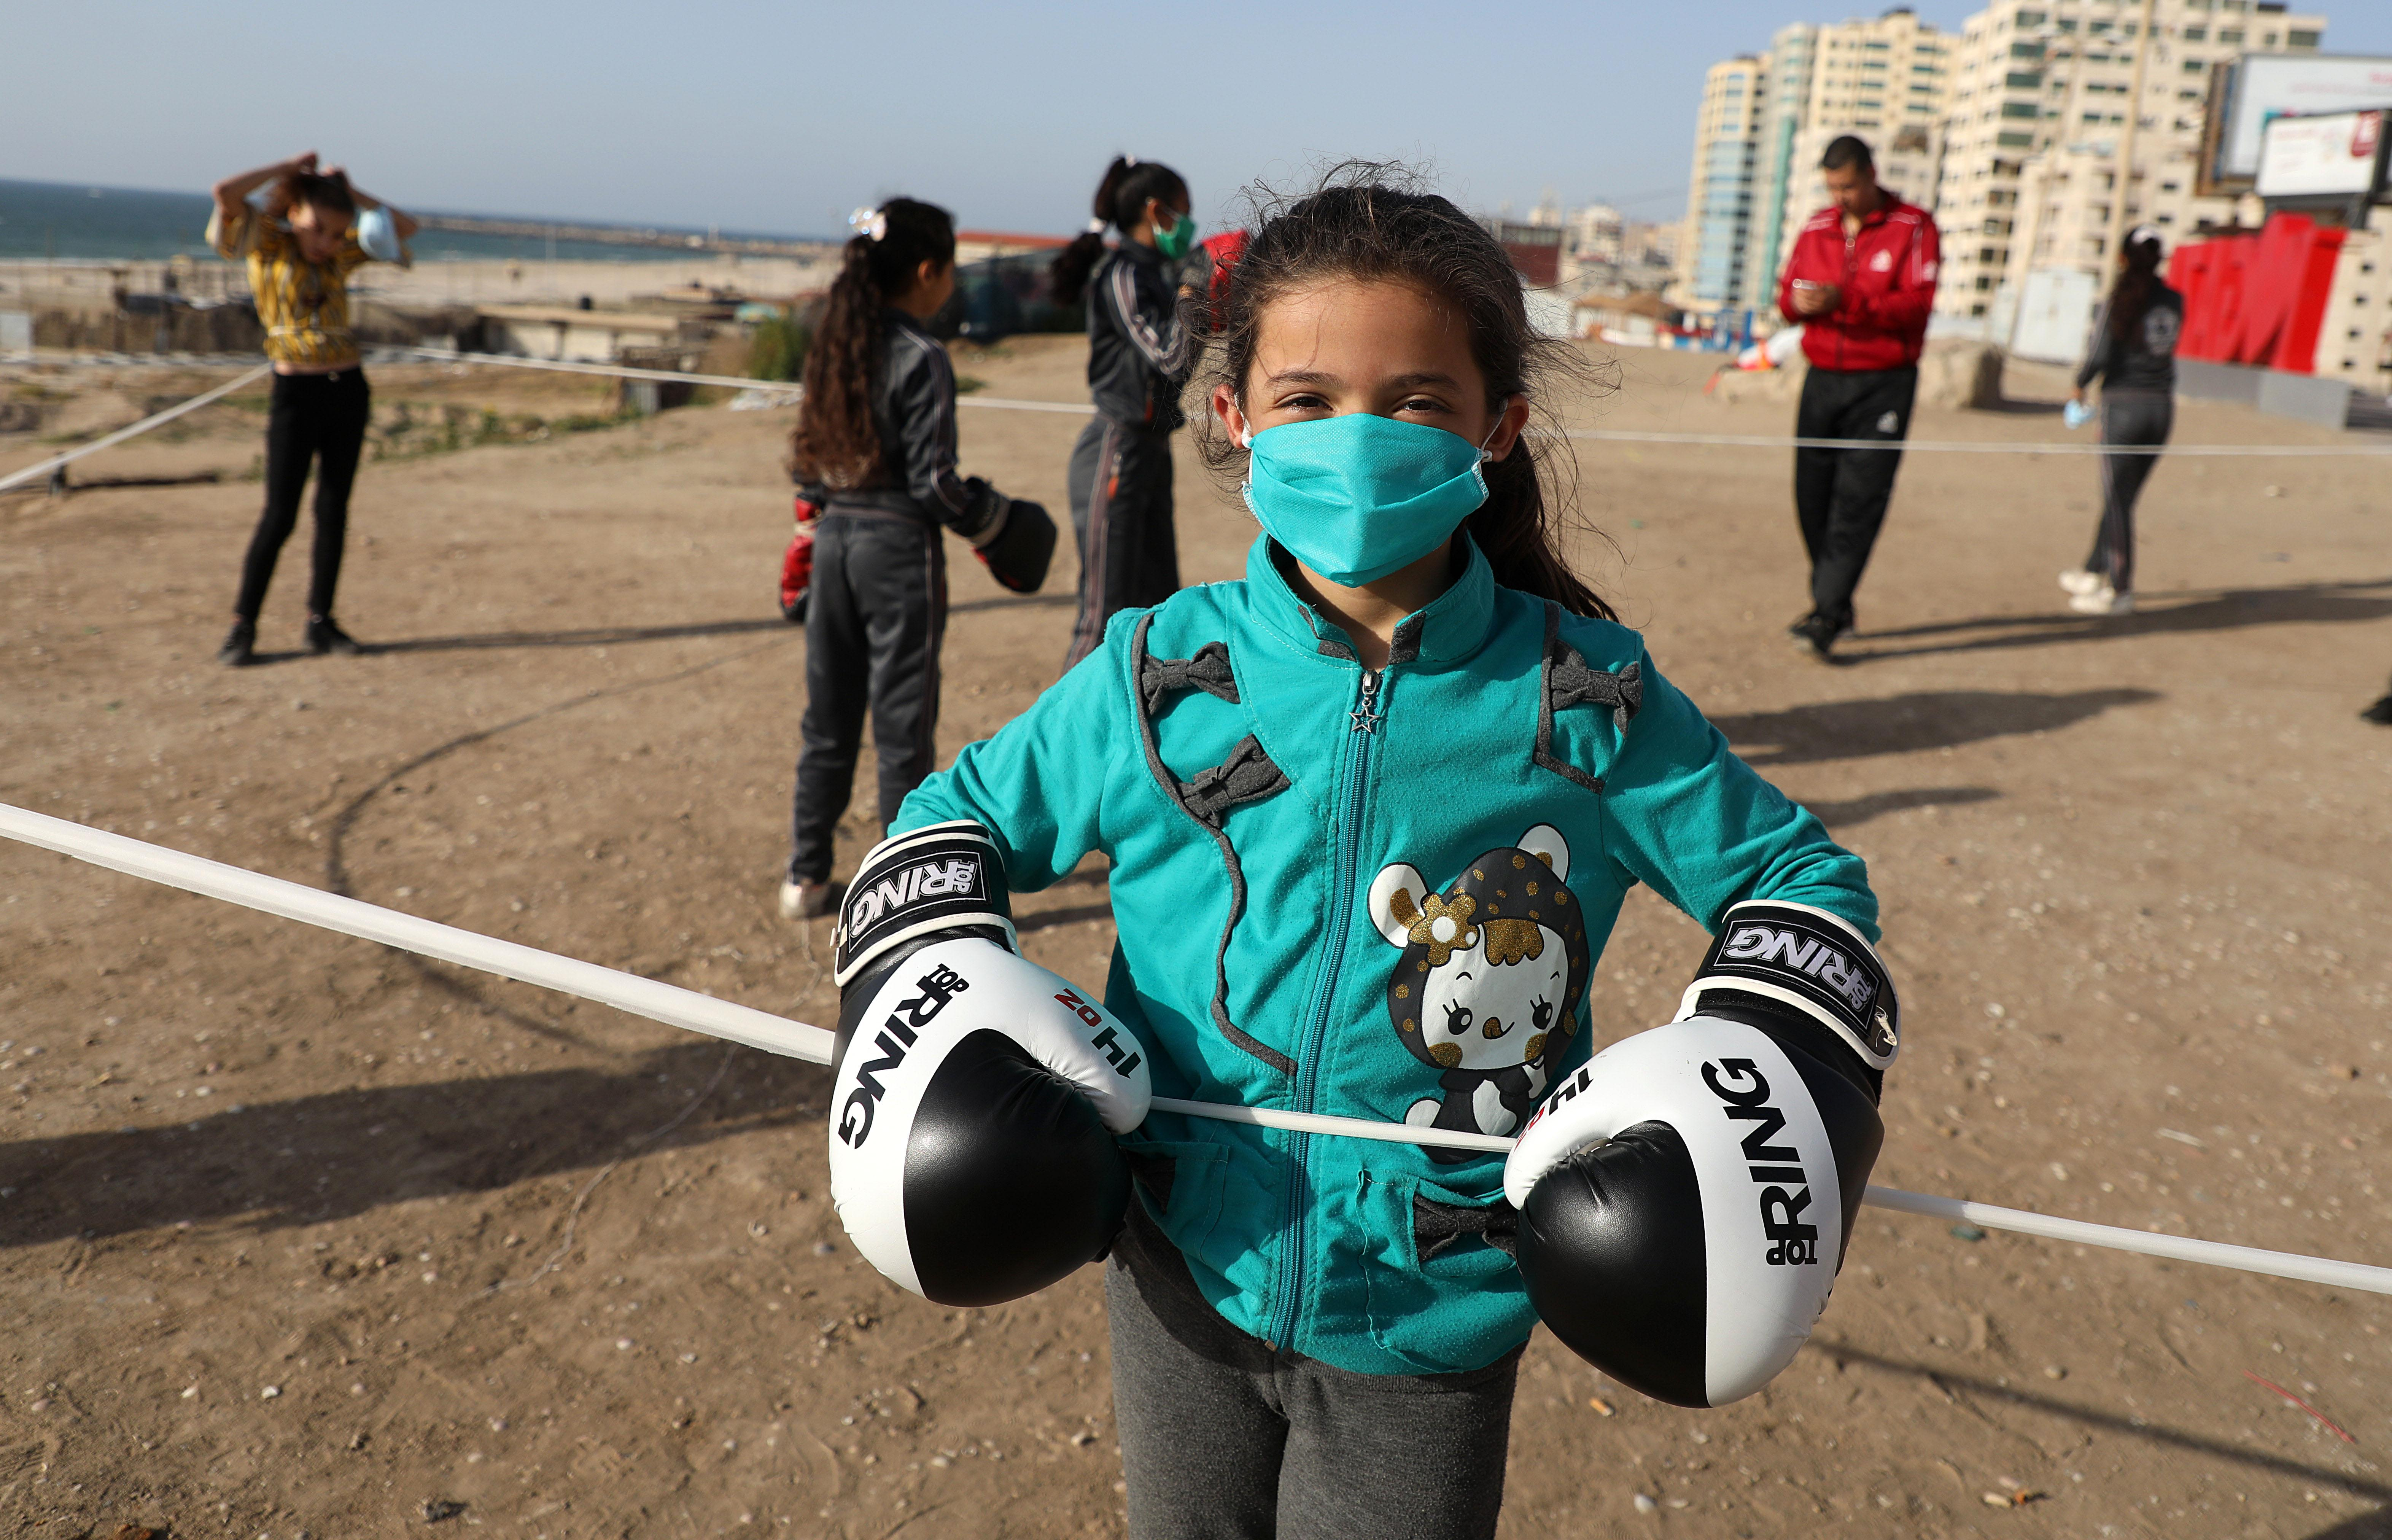 Palestinian girls clad in masks due to the COVID-19 coronavirus pandemic take part in an open-air boxing training near the beach in Gaza City on May 12, 2020. (Photo by Majdi Fathi/NurPhoto via Getty Images)